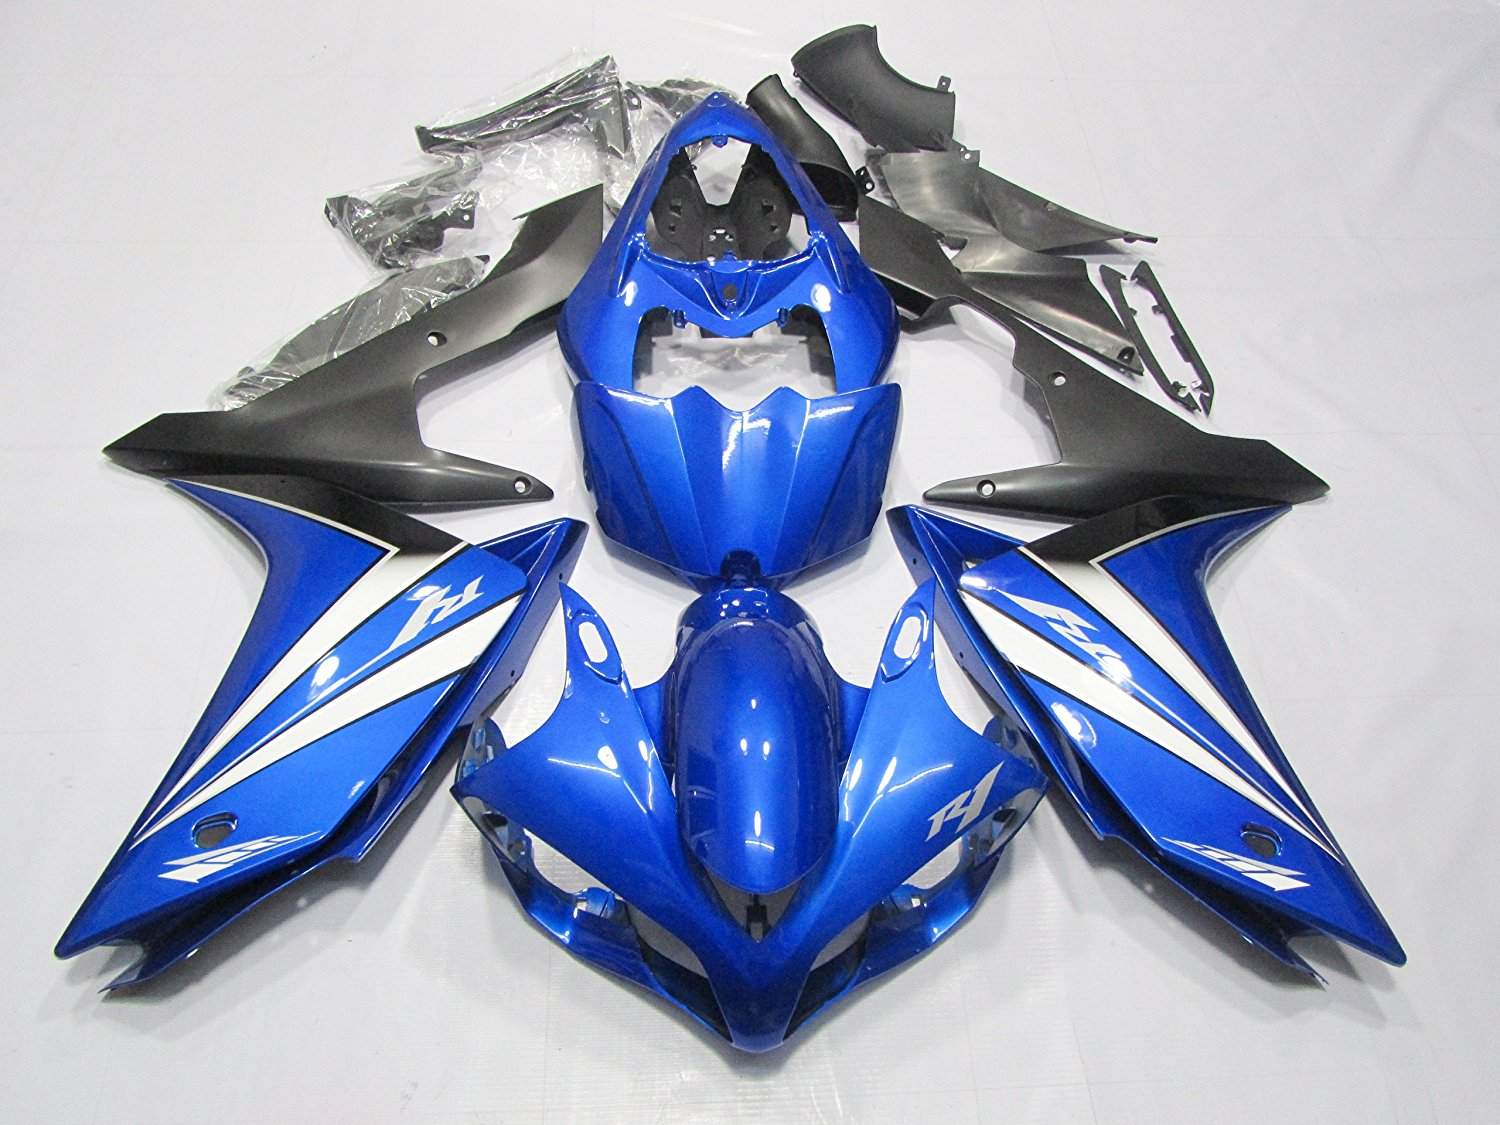 ZXMOTO Blue Black Motorcycle ABS Bodywork fairing kit Painted With Graphic for 07 - 08 Yamaha YZF R1 2007 - 2008